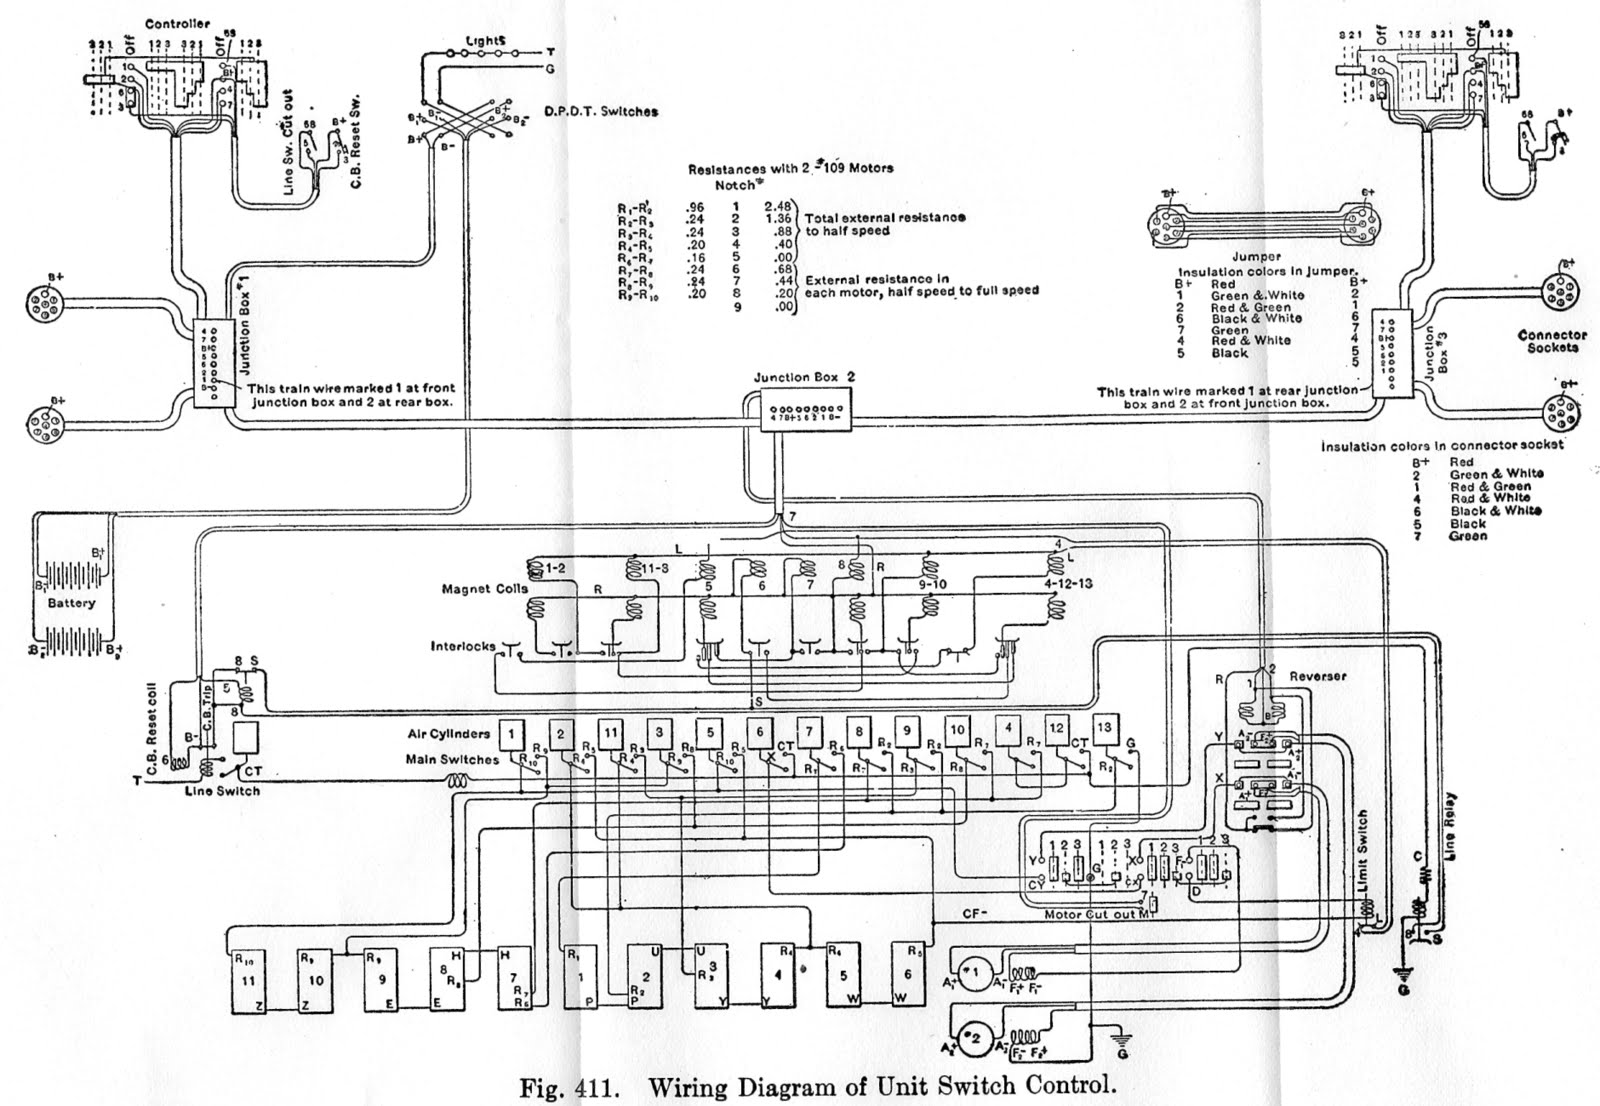 Hicks Car Works Control Circuit Diagrams 1954 Dodge Pickup Wiring Diagram